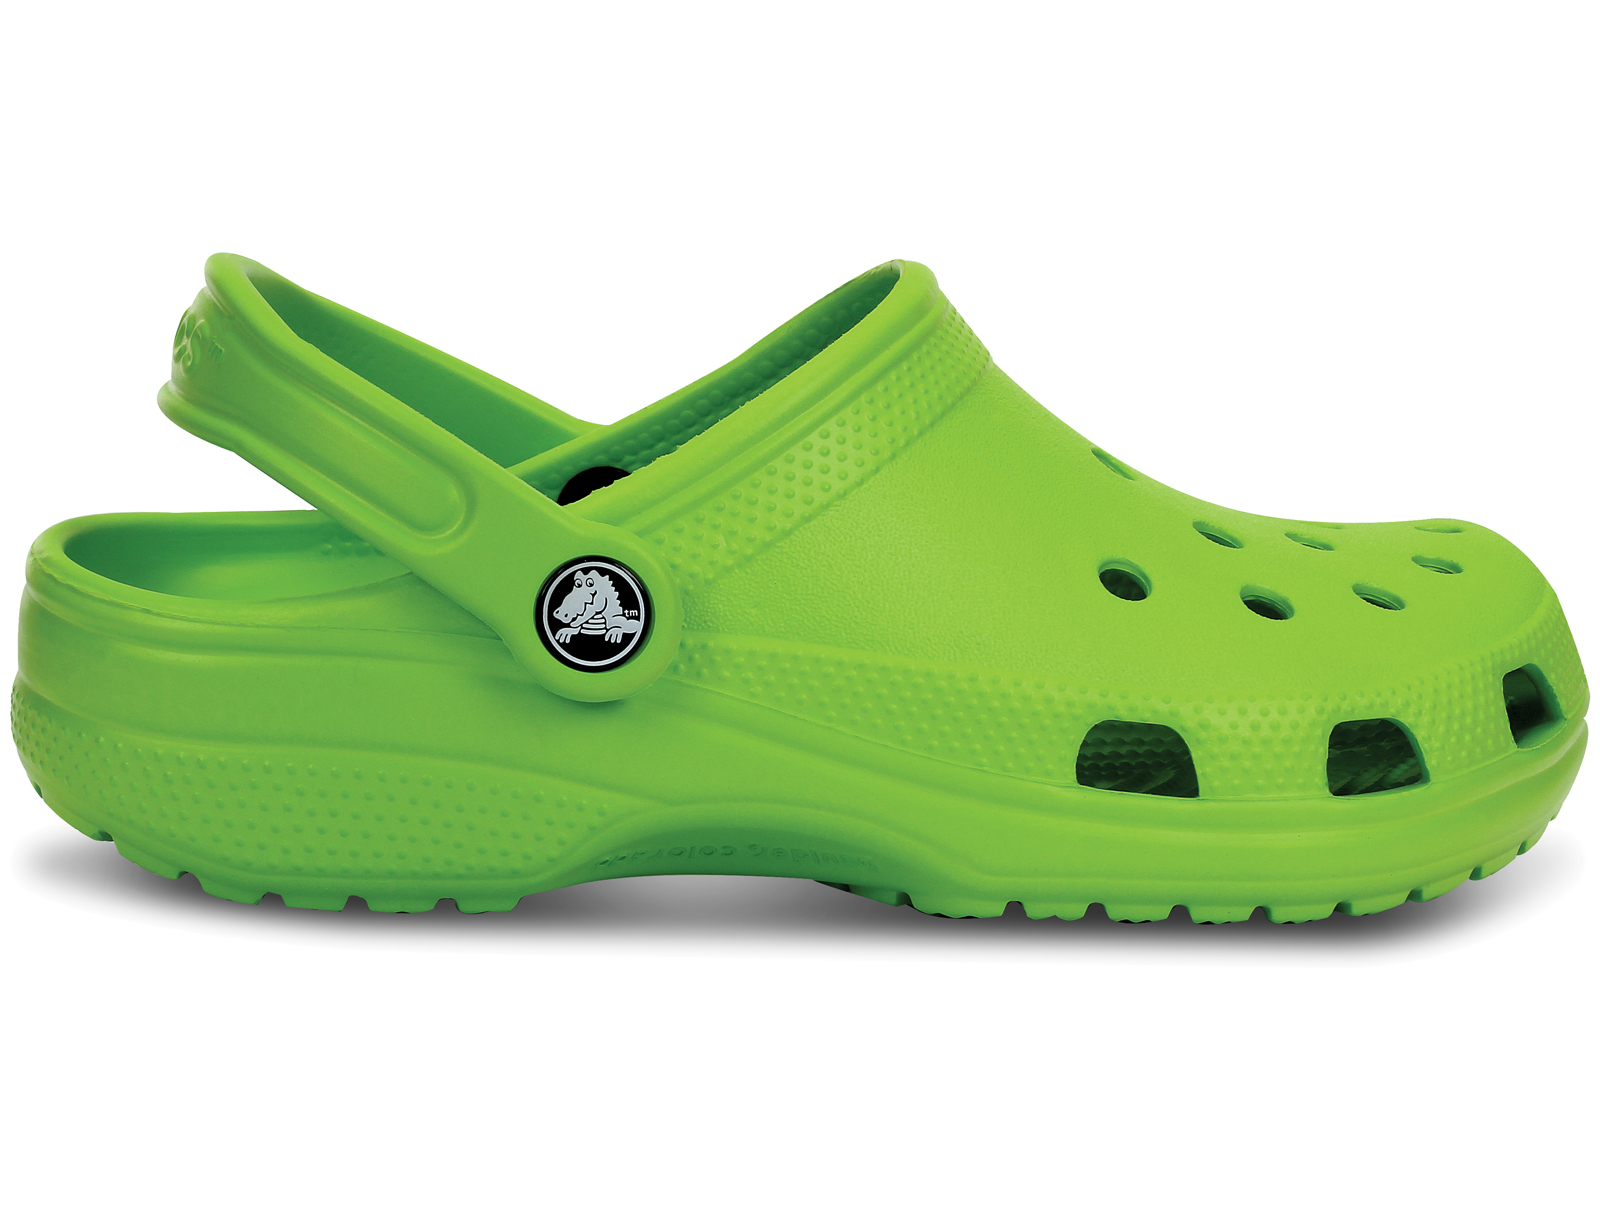 Genuine Croc Shoes Size